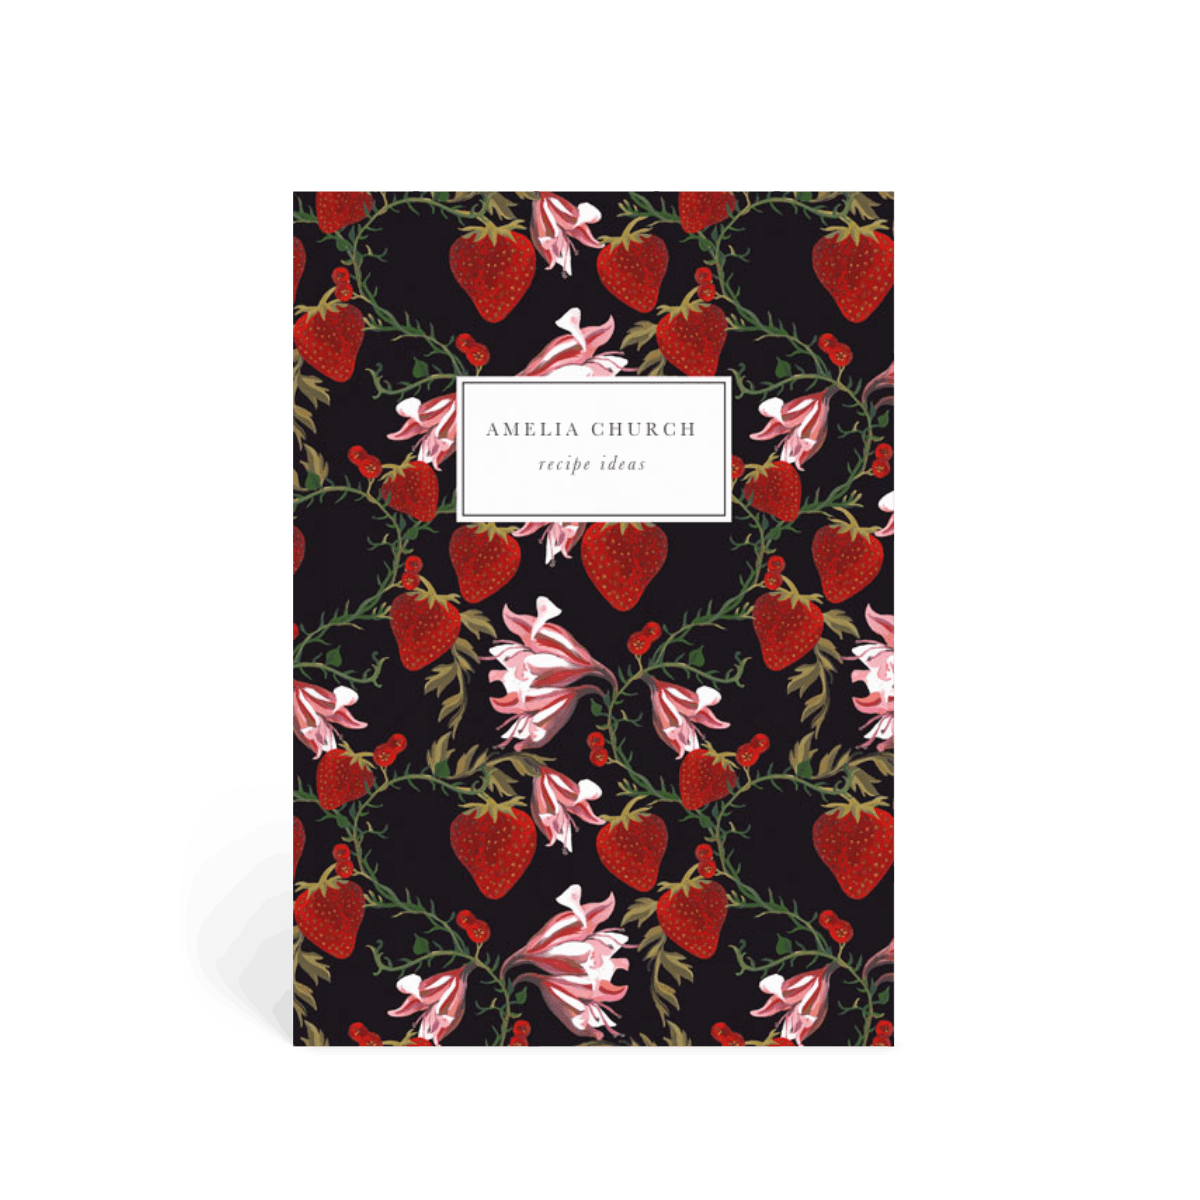 Https%3a%2f%2fwww.papier.com%2fproduct image%2f55570%2f25%2fstrawberry floral 13347 front 1542299588.png?ixlib=rb 1.1